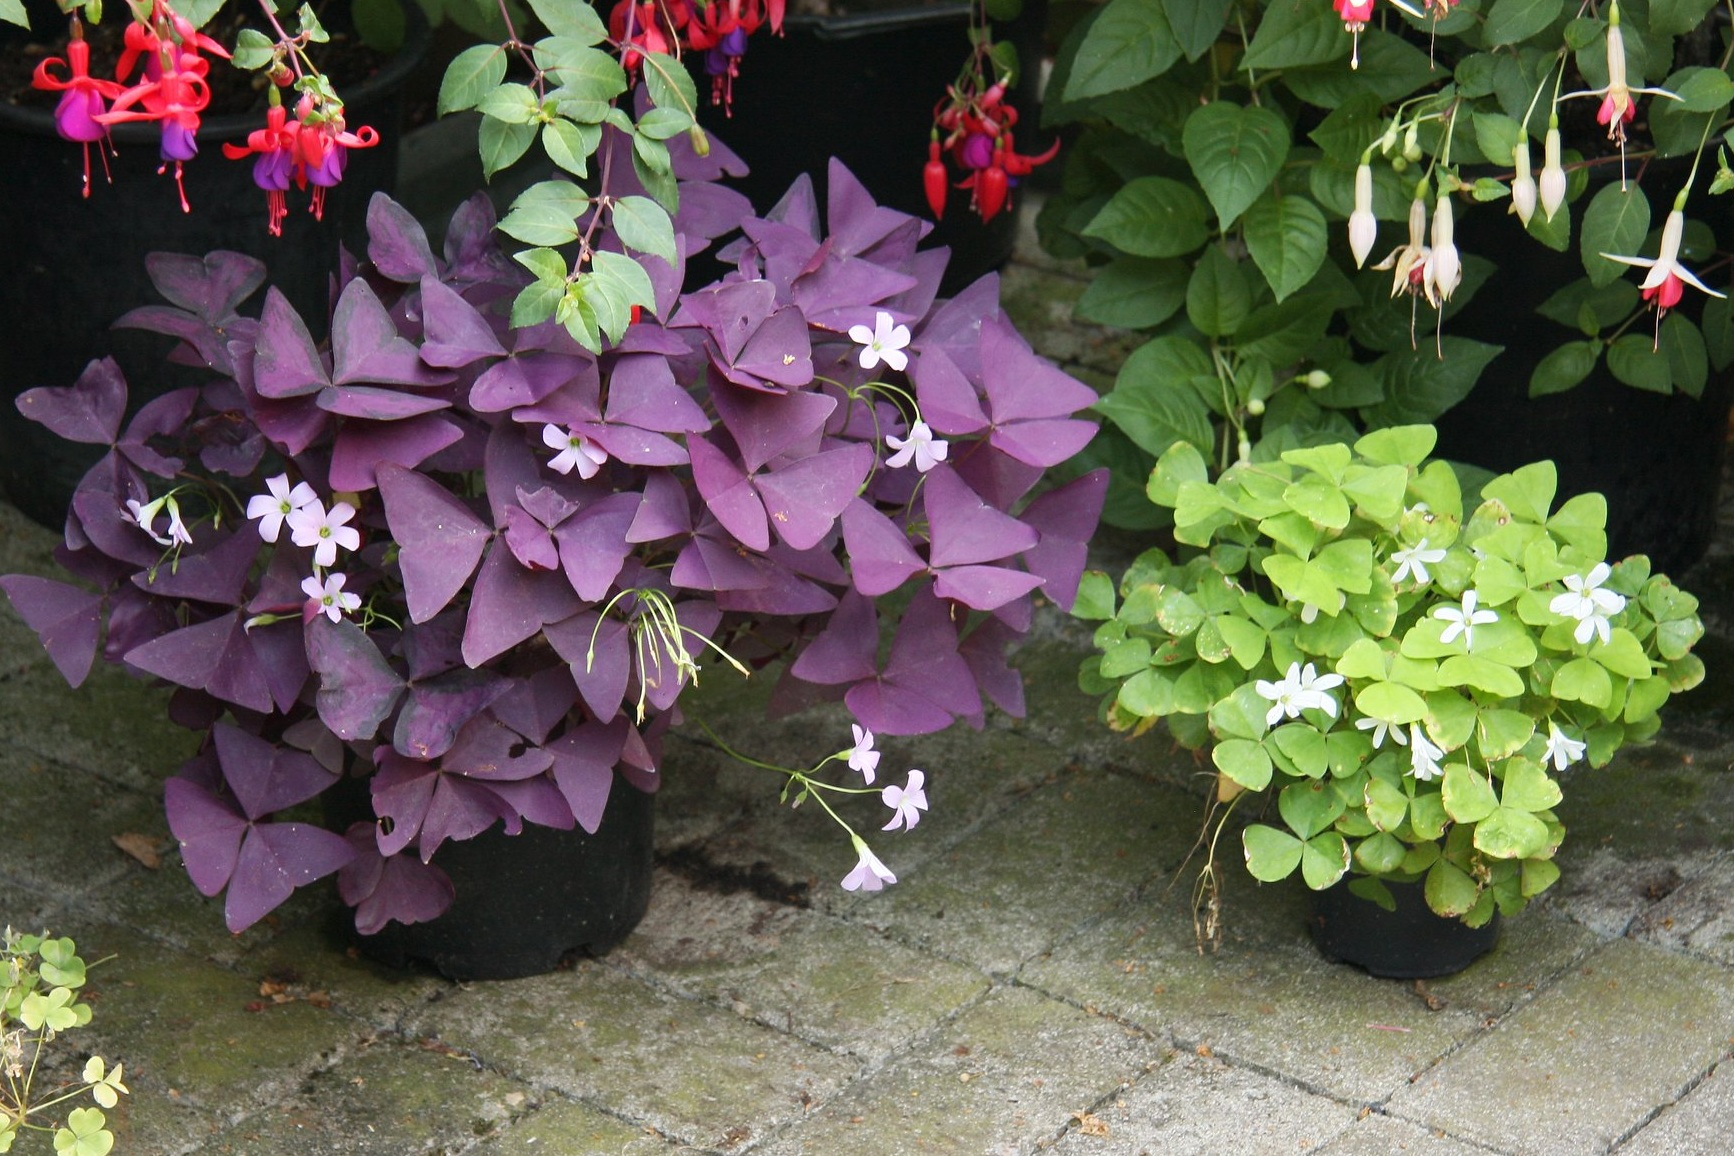 Oxalis triangularis  comes in a purple and a green form. Photograph:  Maja Dumat  on  Flickr .